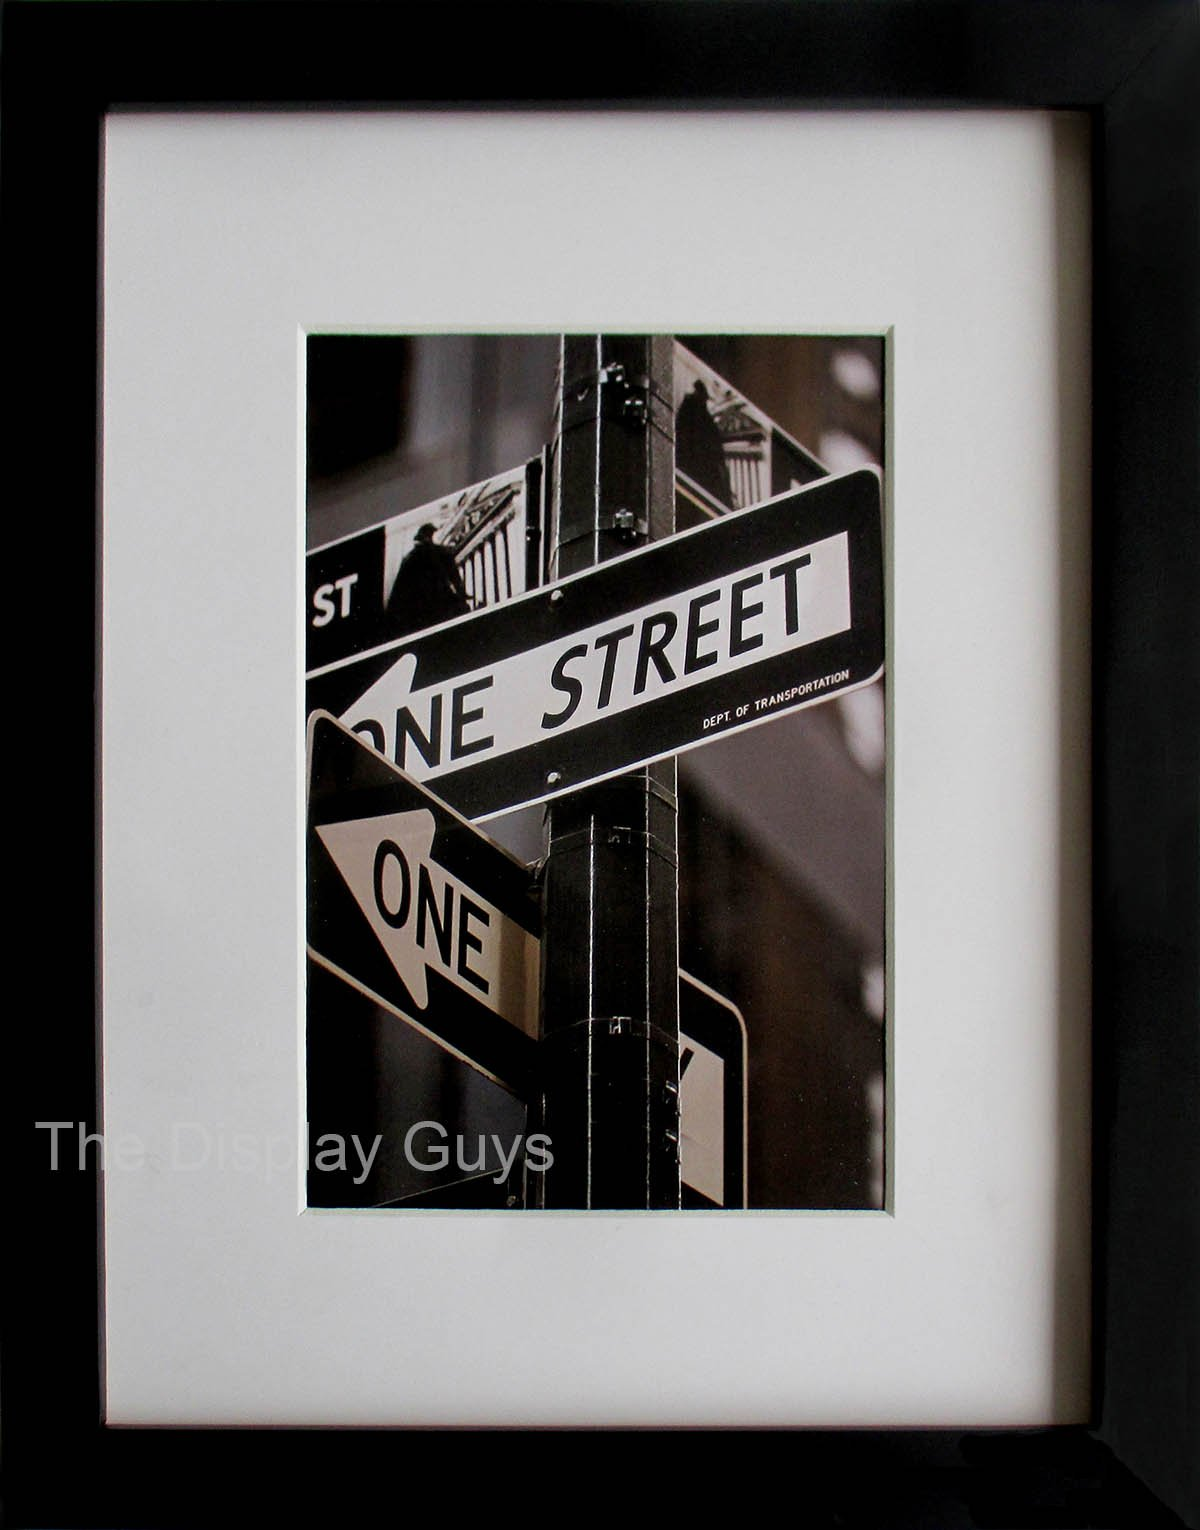 The Display Guys ~Luxury Made Affordable~ 11X14'' Pine Wood Frame in Black with Real Tempered Glass, Includes Two Mat Boards Option for 8x10' Photo And 5x7' Collage Photos